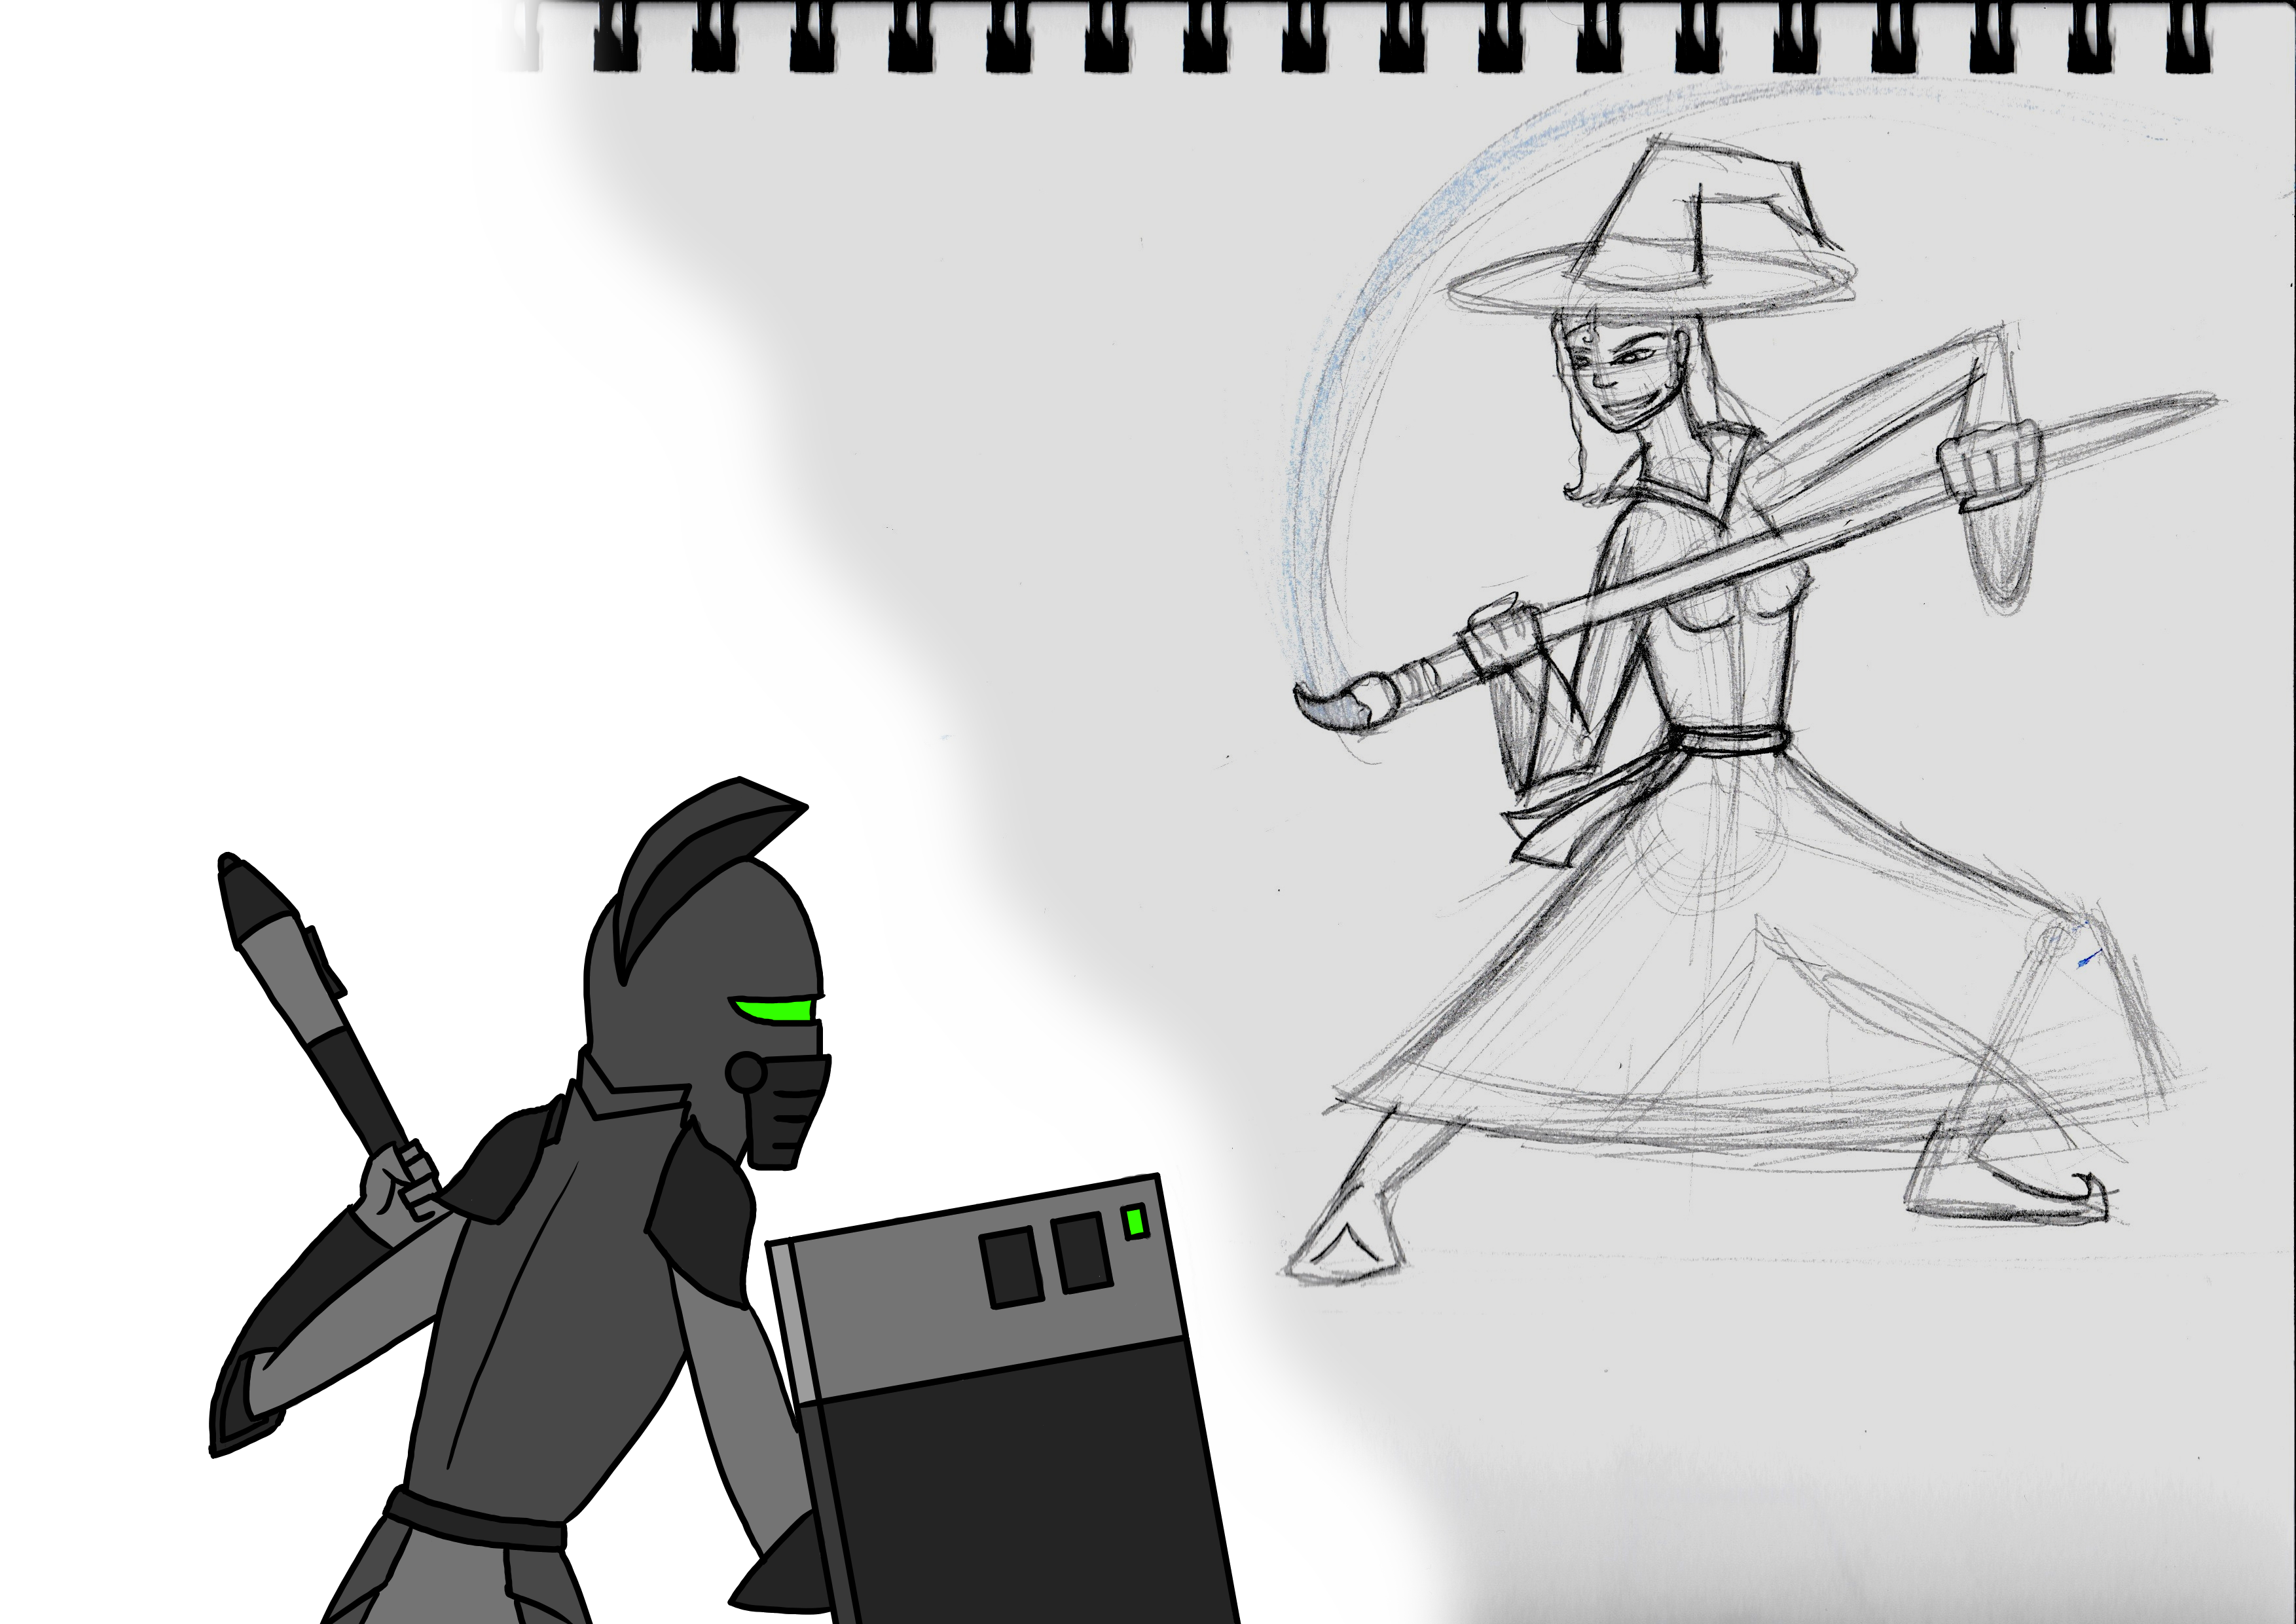 Tablet Knight VS Sketch Witch